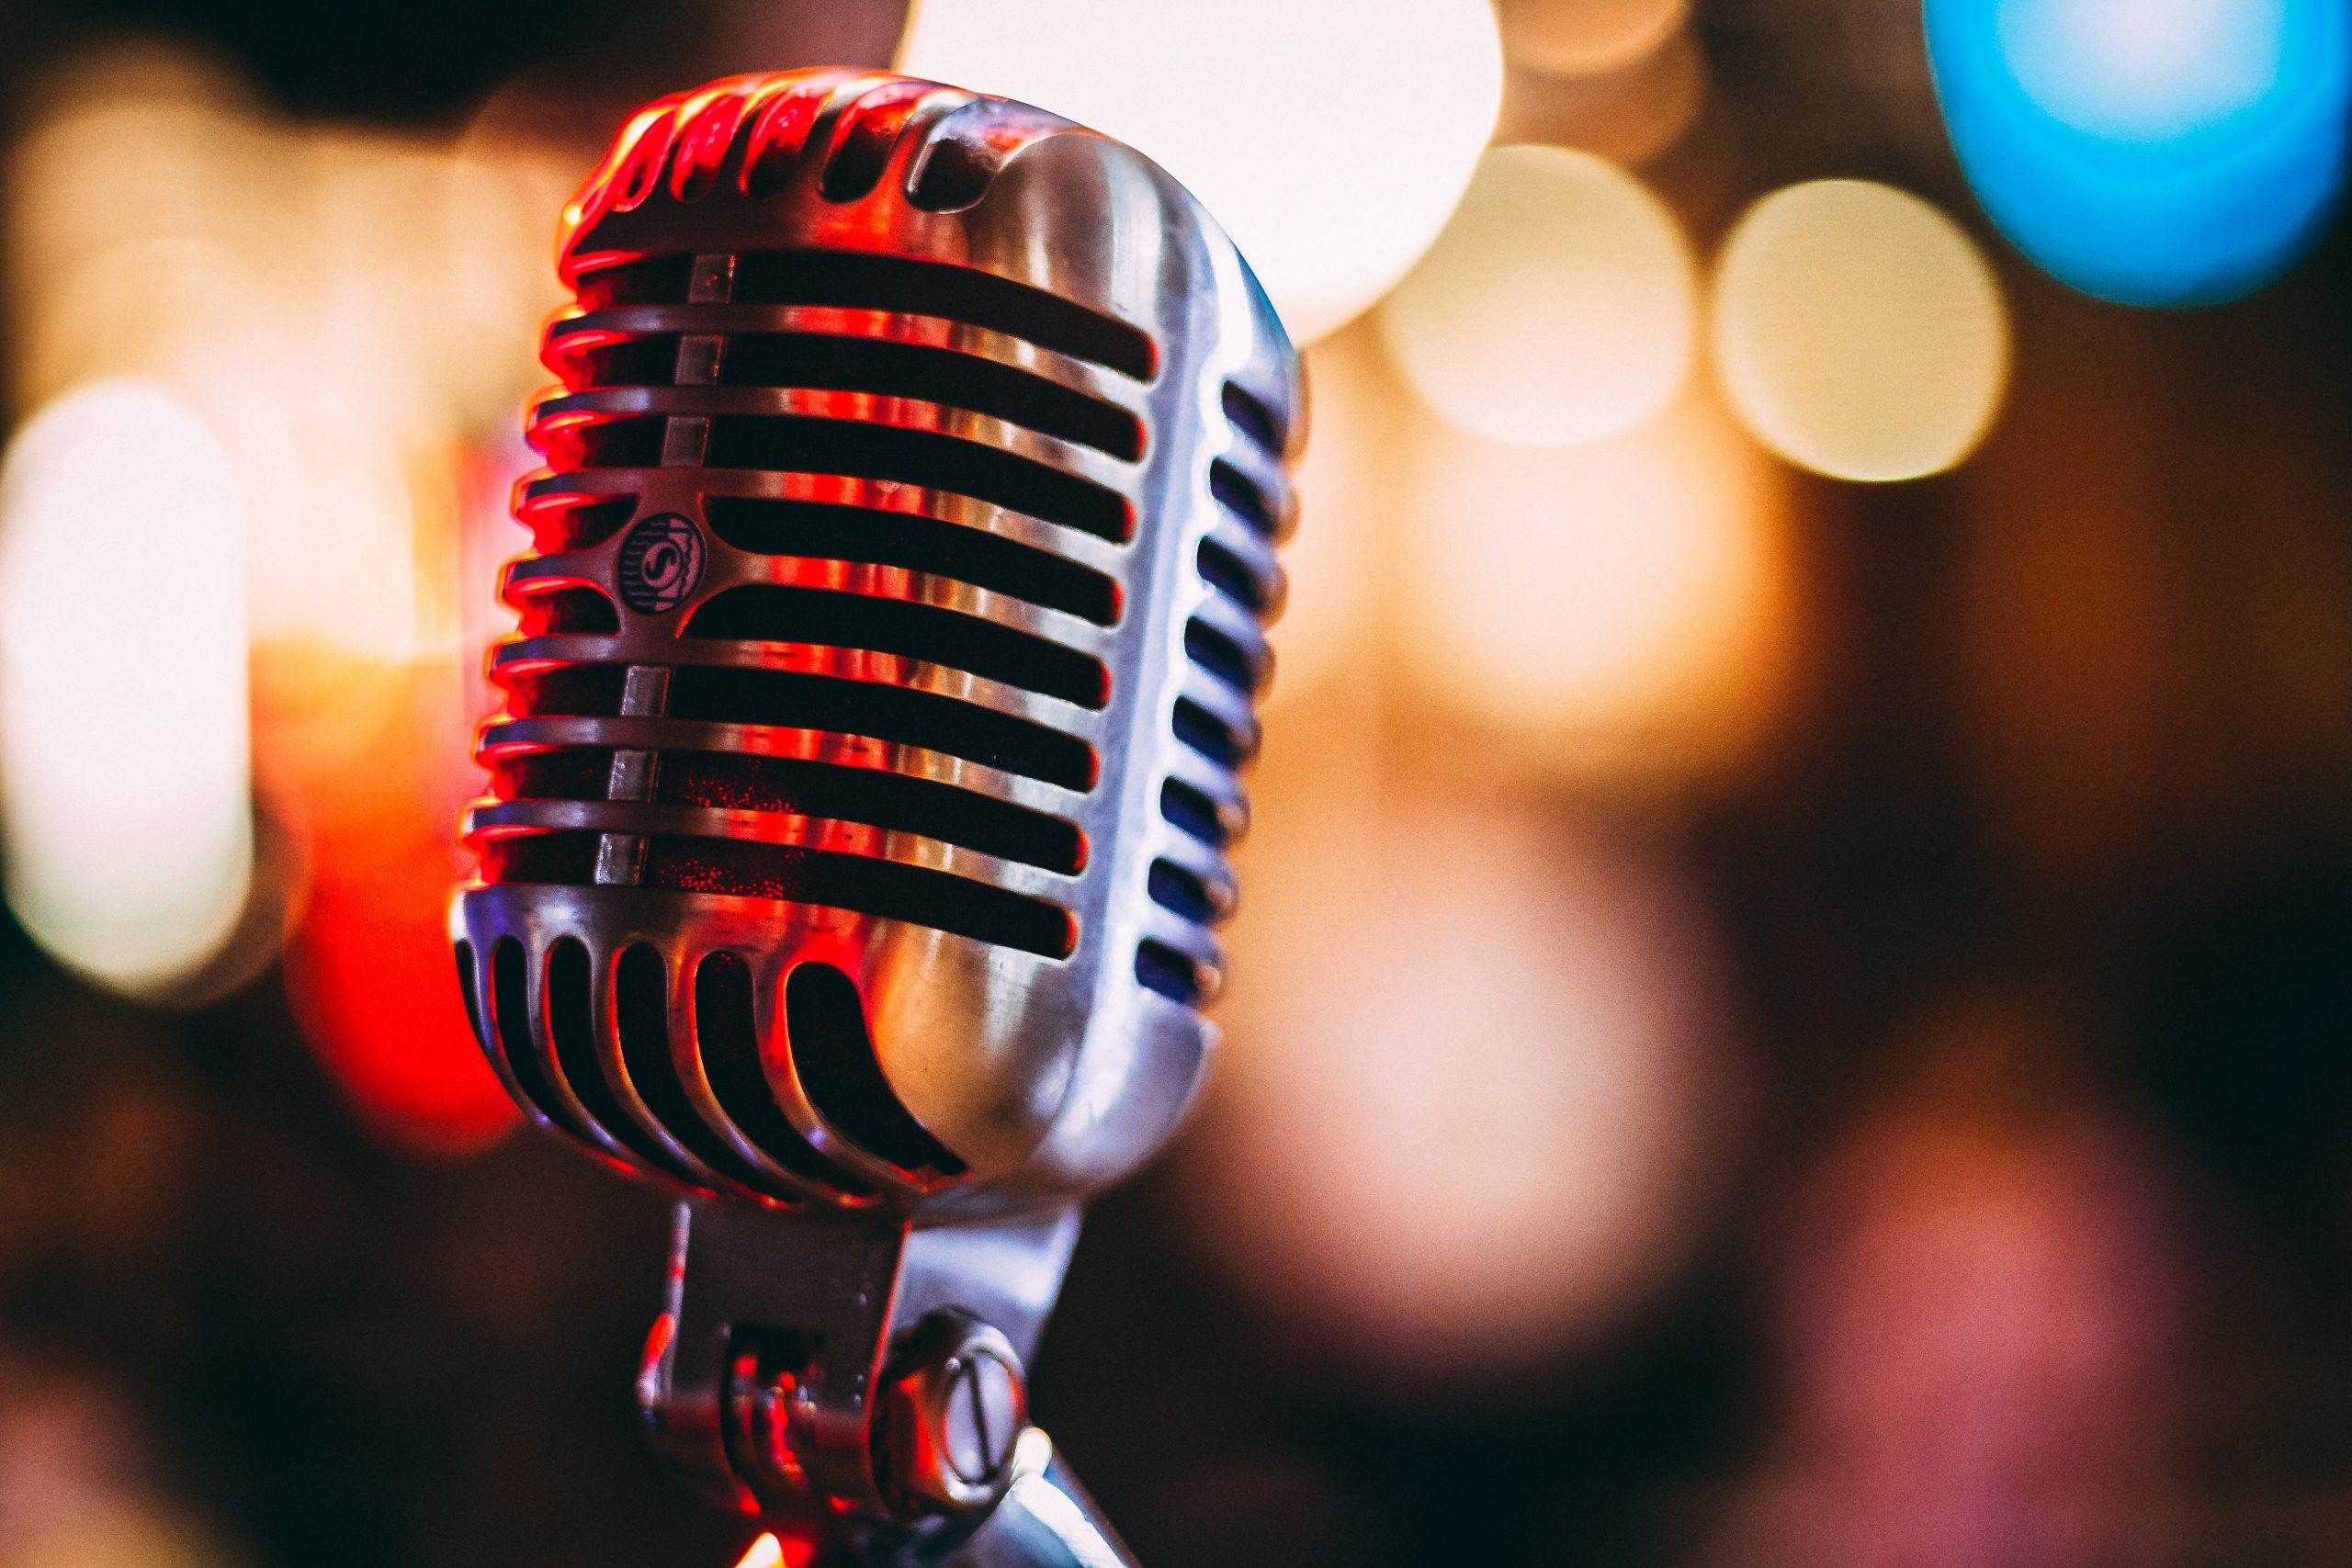 Microphone to symbolise amplifying a brand tone of voice